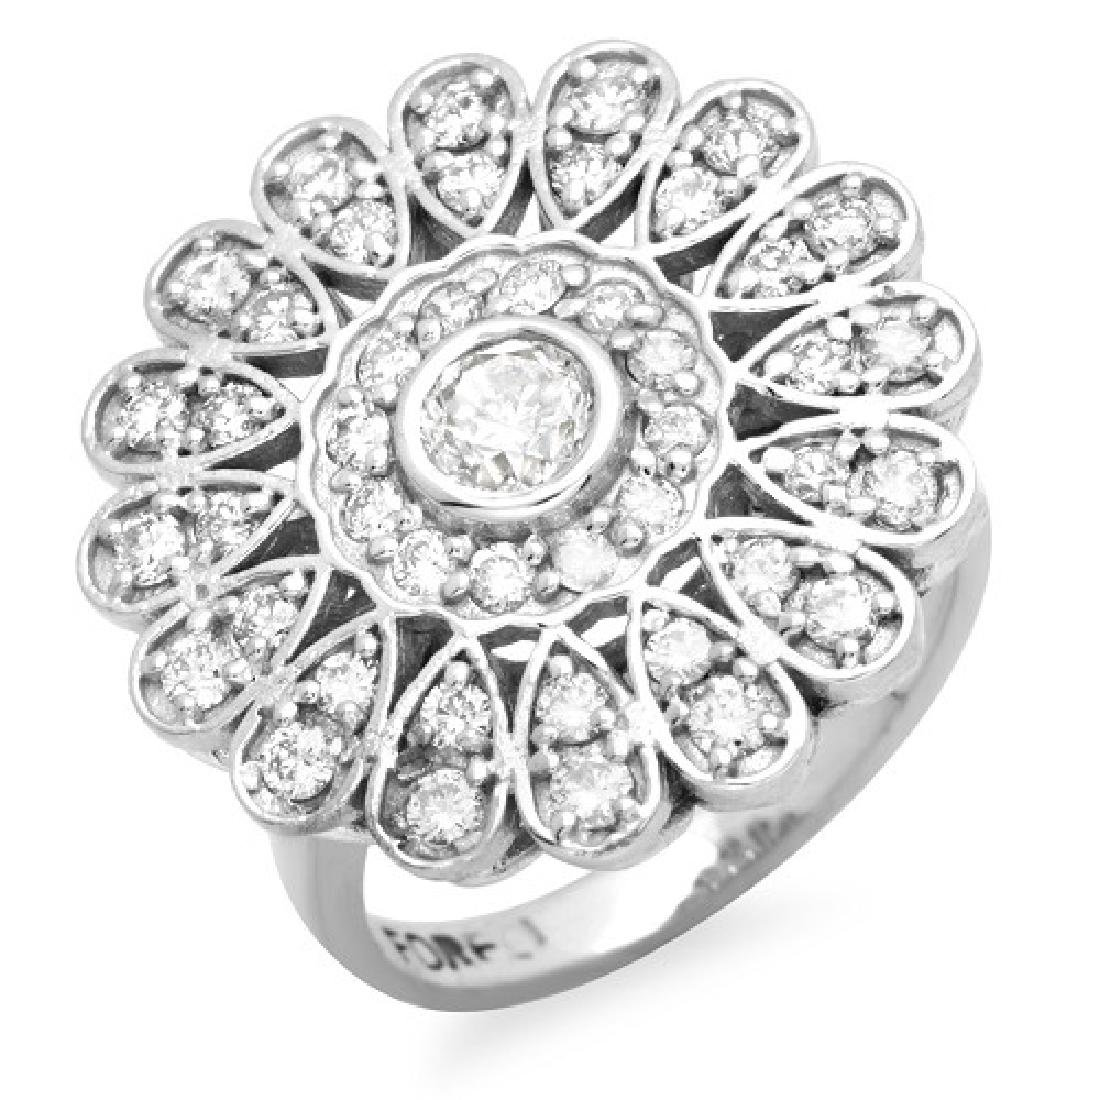 1.25 Carat Natural Diamond 14K Solid White Gold Ring